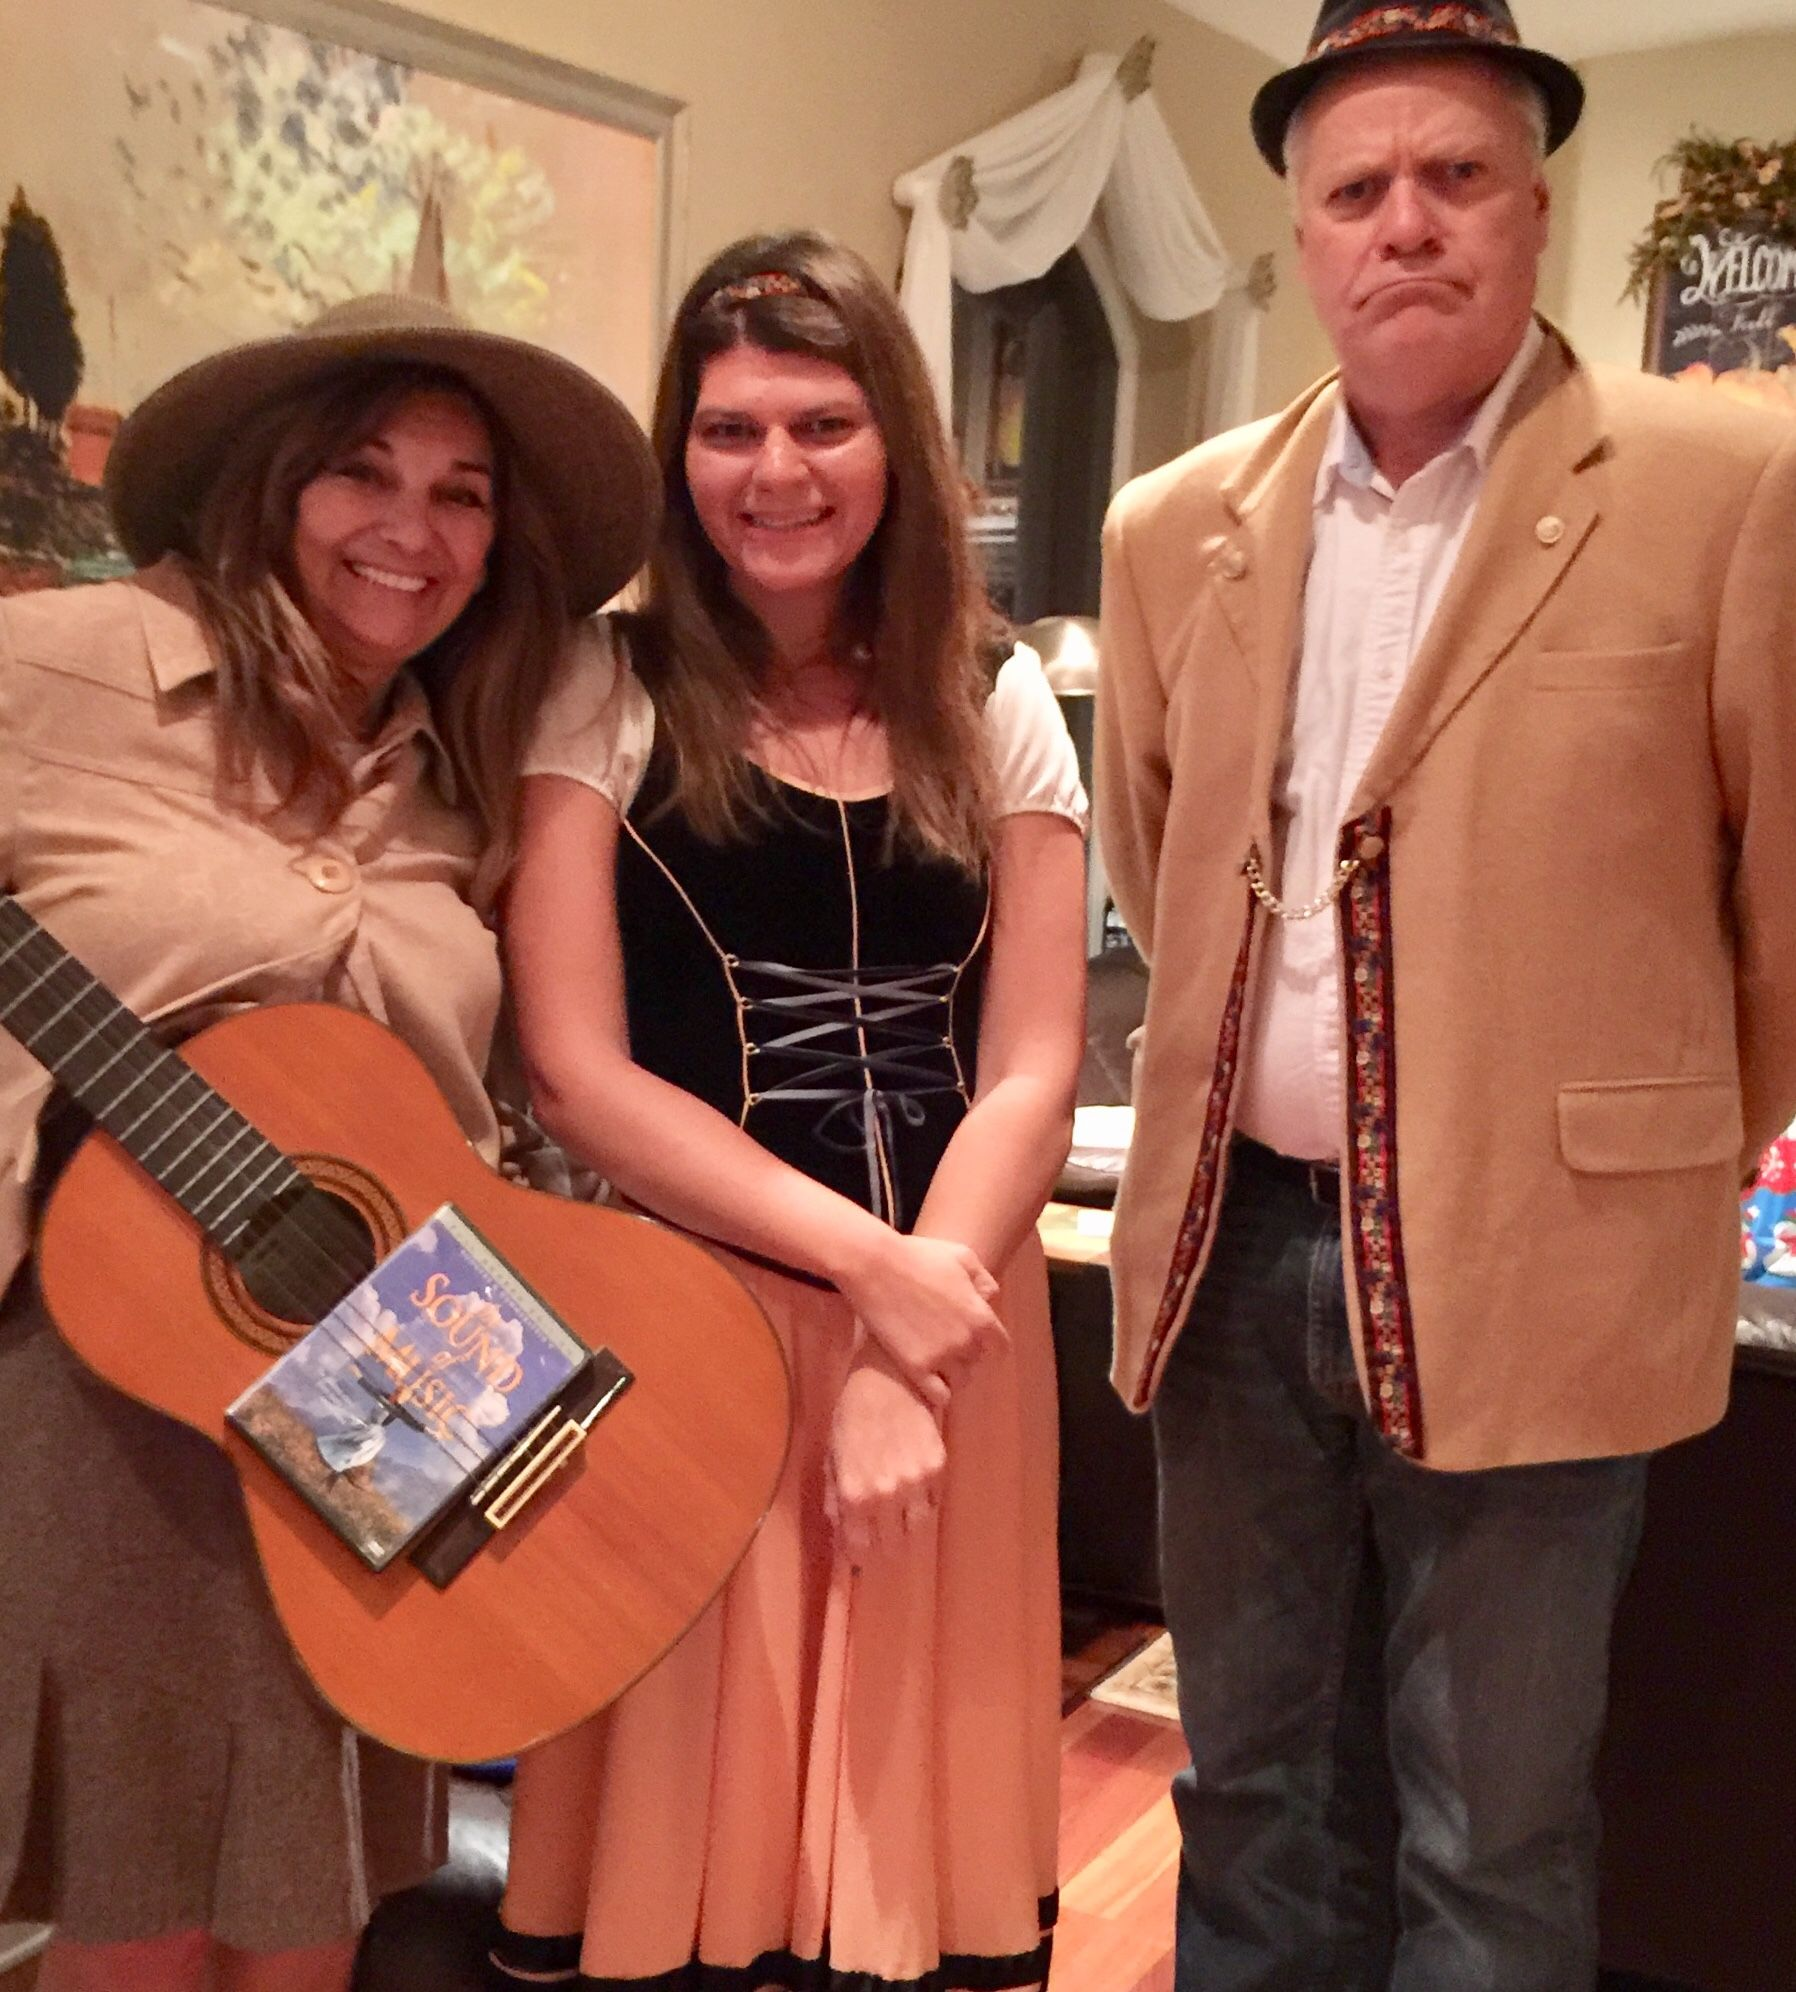 The Von Trapps Maria, Lisel and the captain costumes